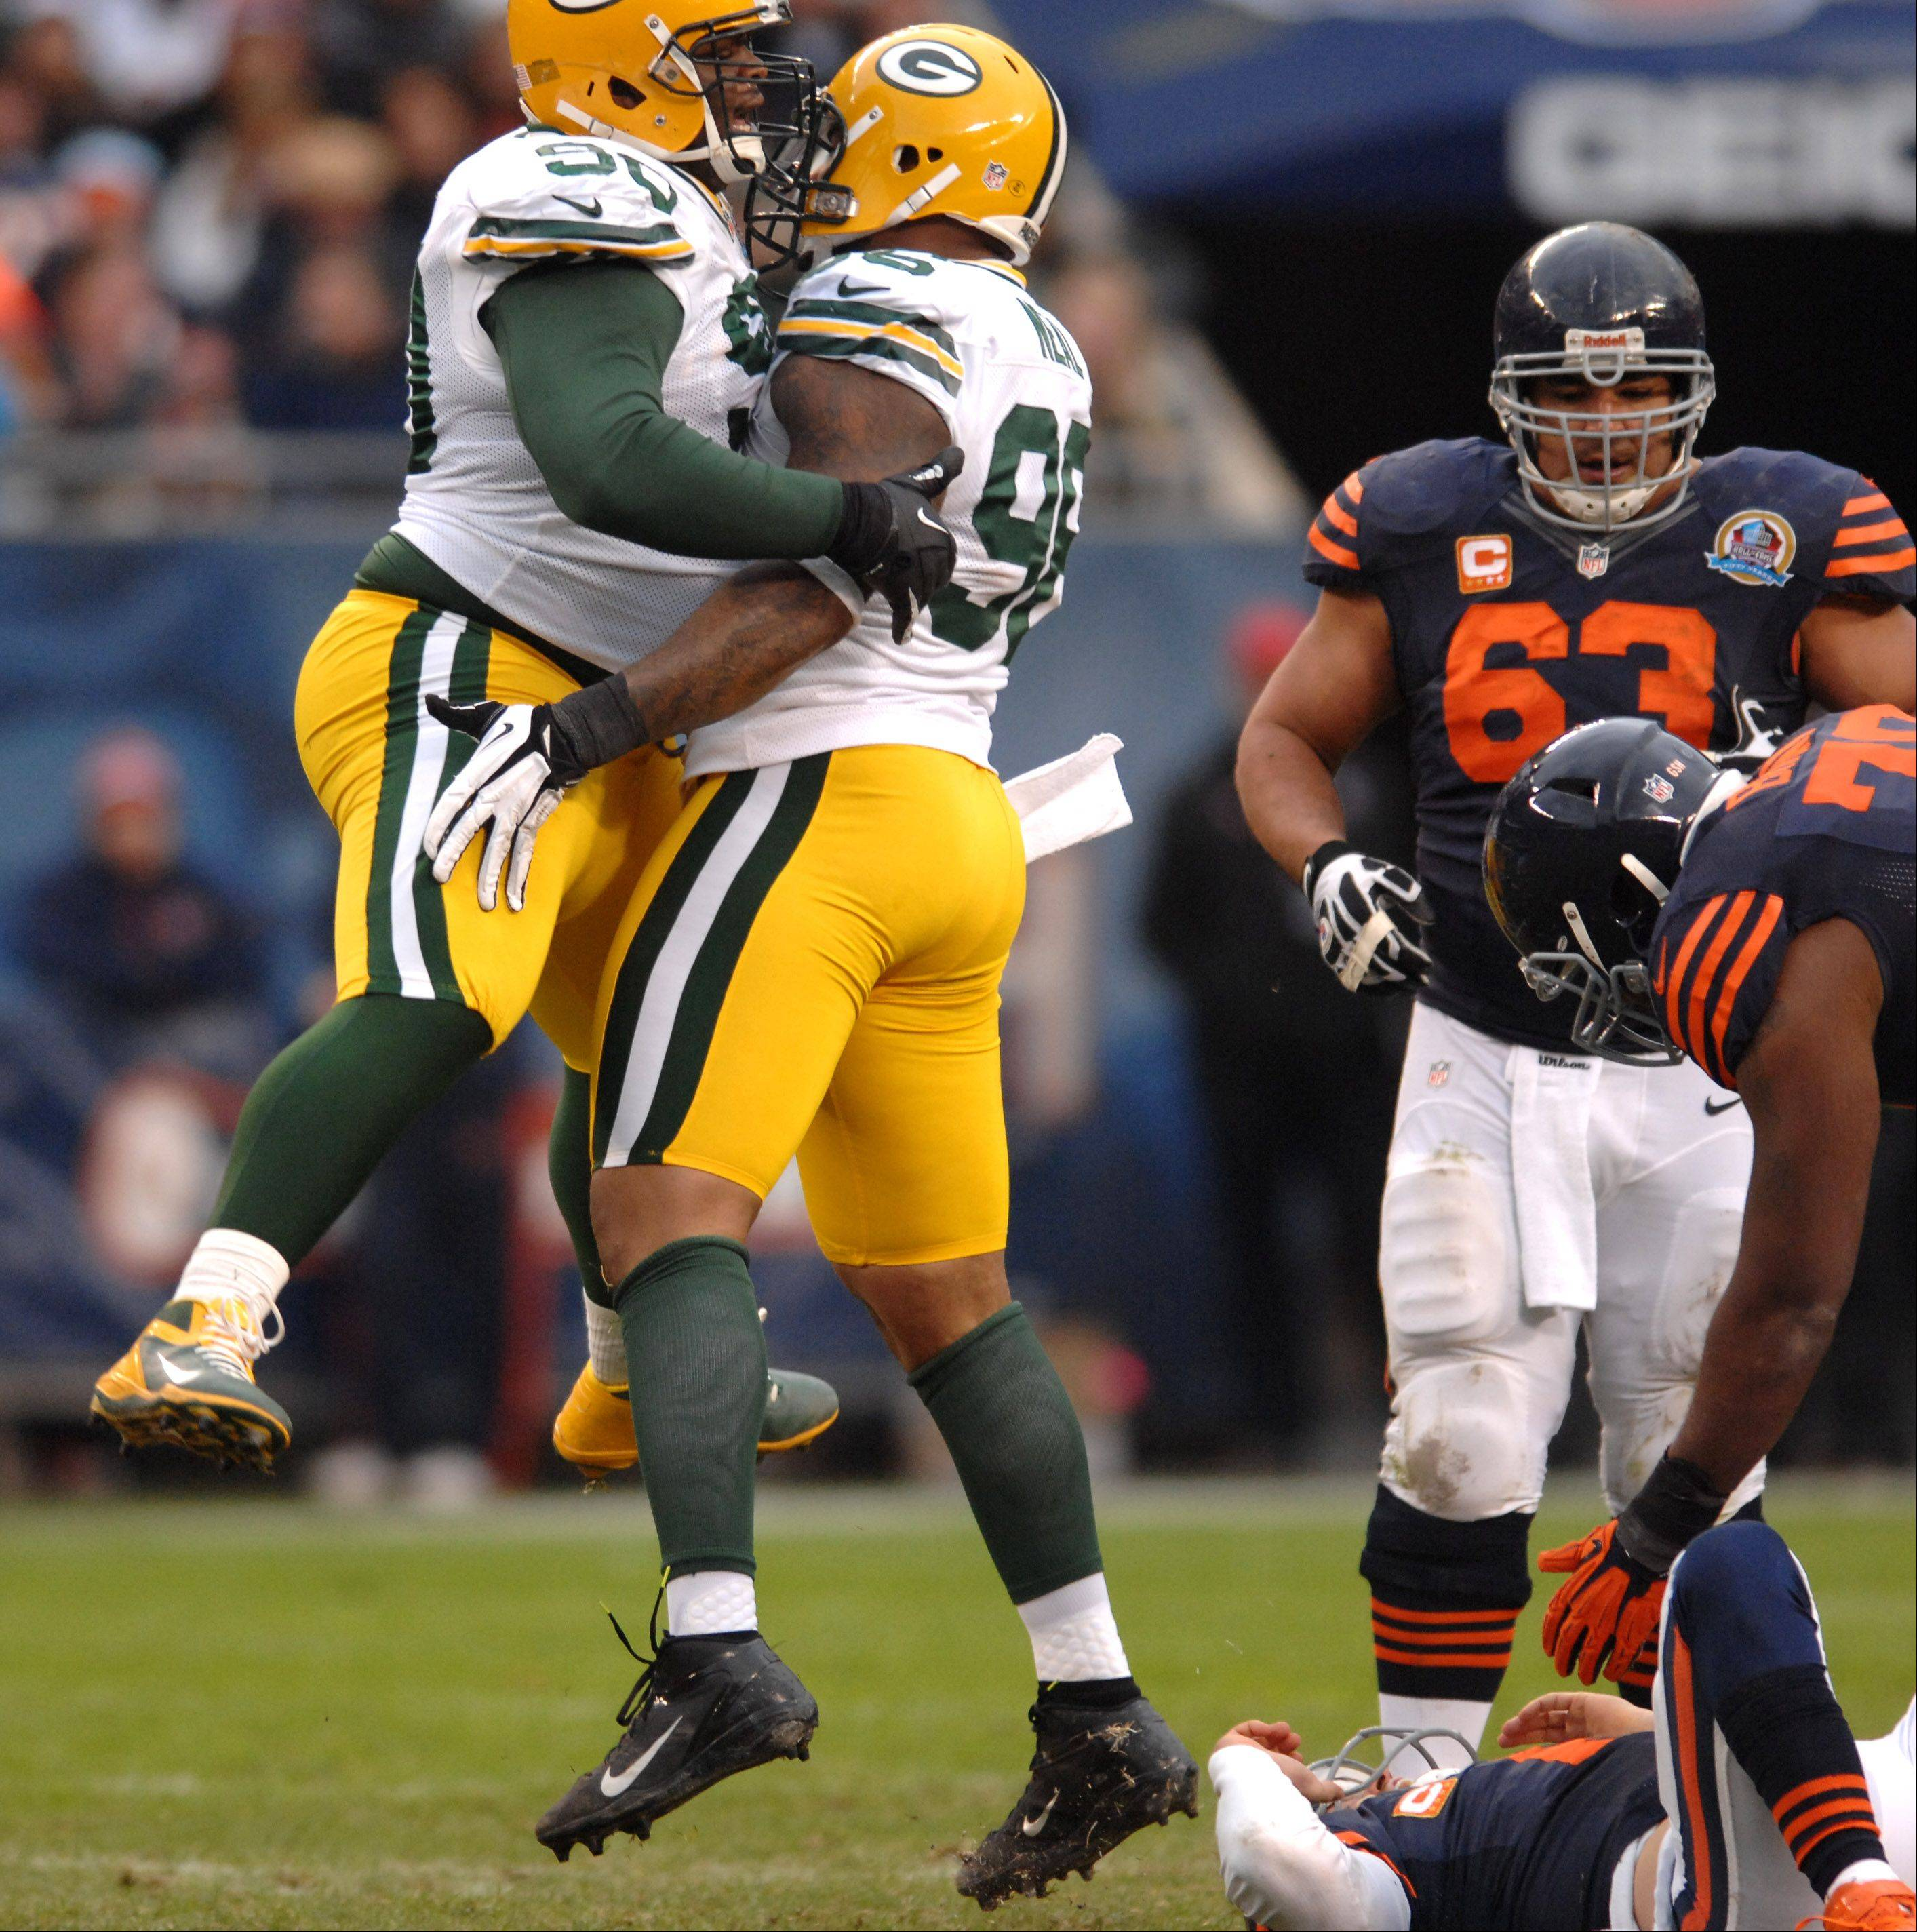 Green Bay Packers nose tackle B.J. Raji (90) and defensive tackle Jordan Miller (96) celebrate a sack of Chicago Bears quarterback Jay Cutler (6) during Sunday's game at Soldier Field in Chicago.